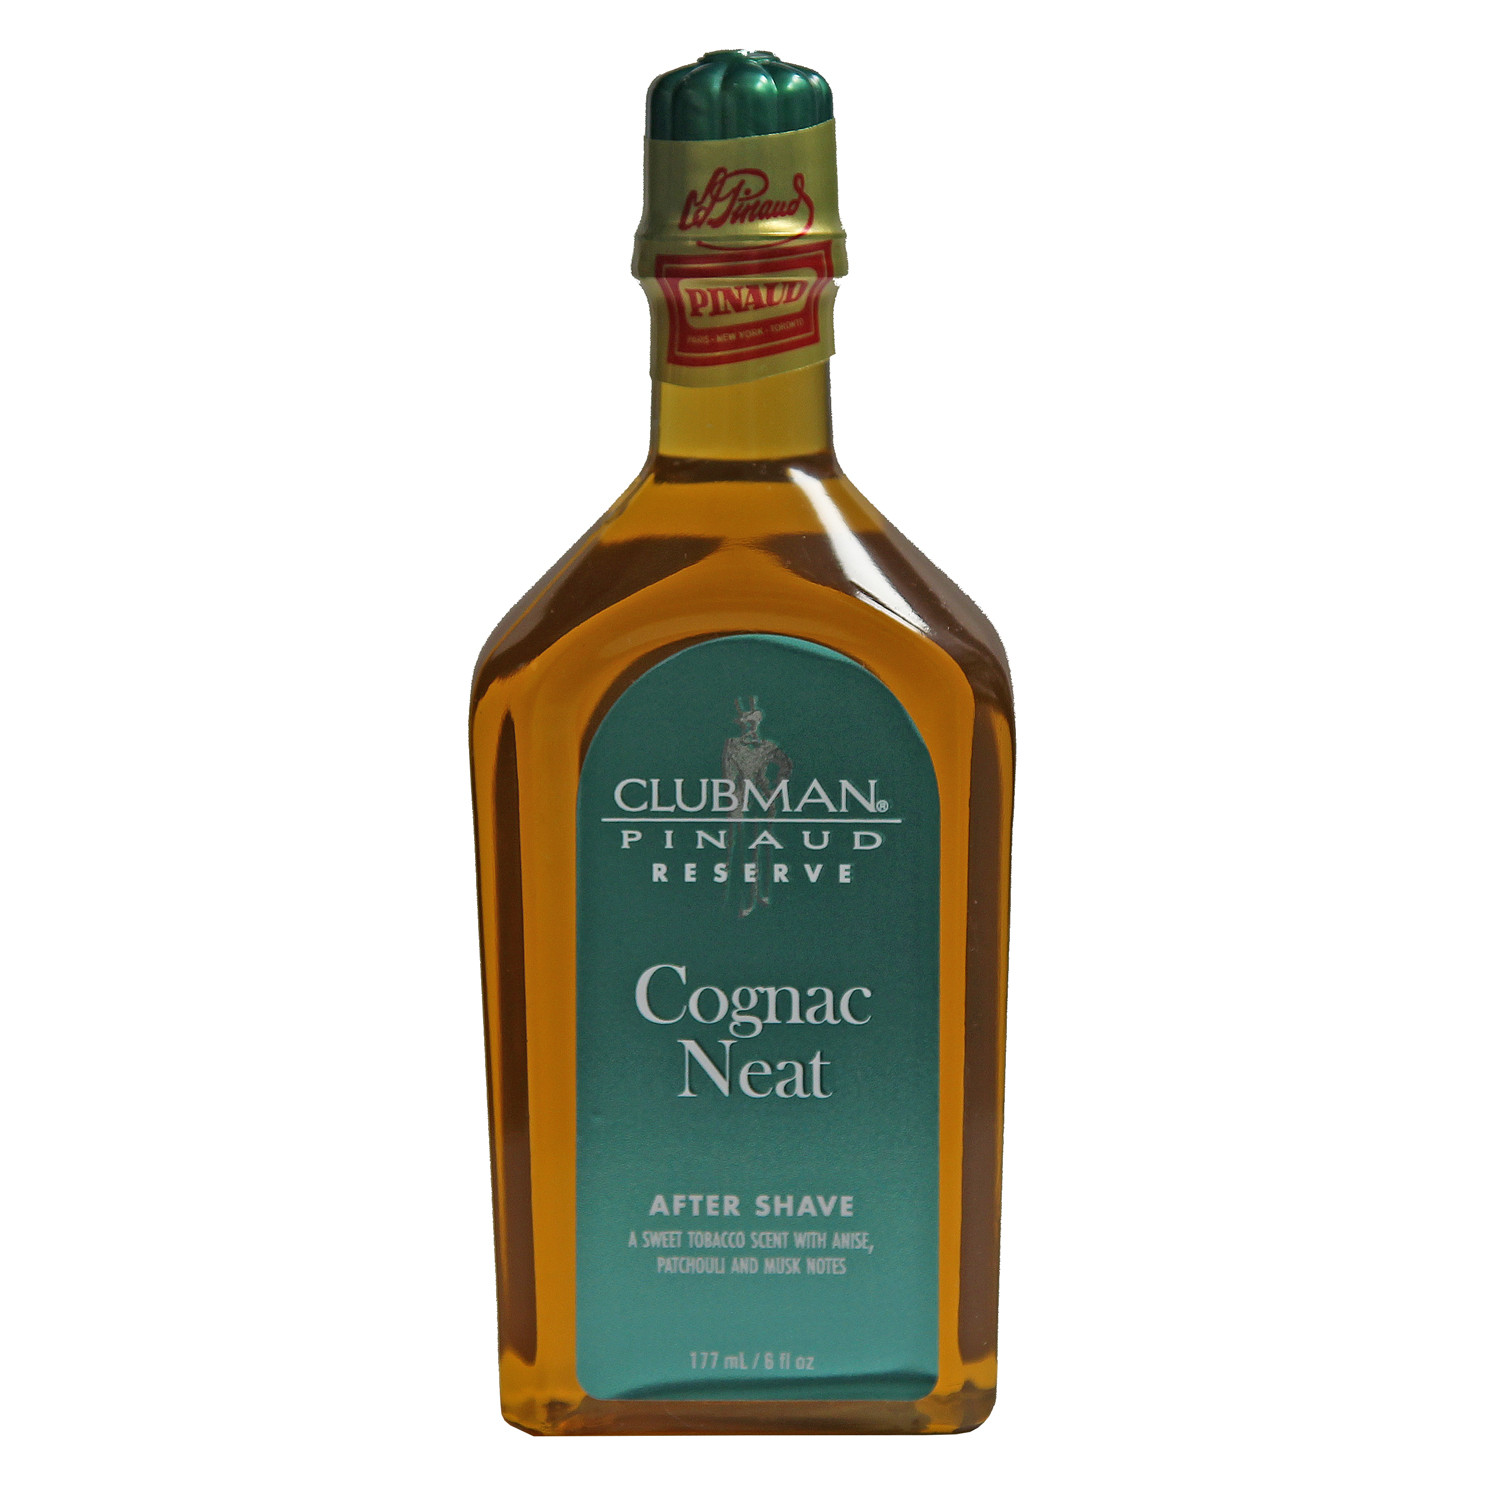 Clubman Pinaud Reserve Cognac Neat After Shave